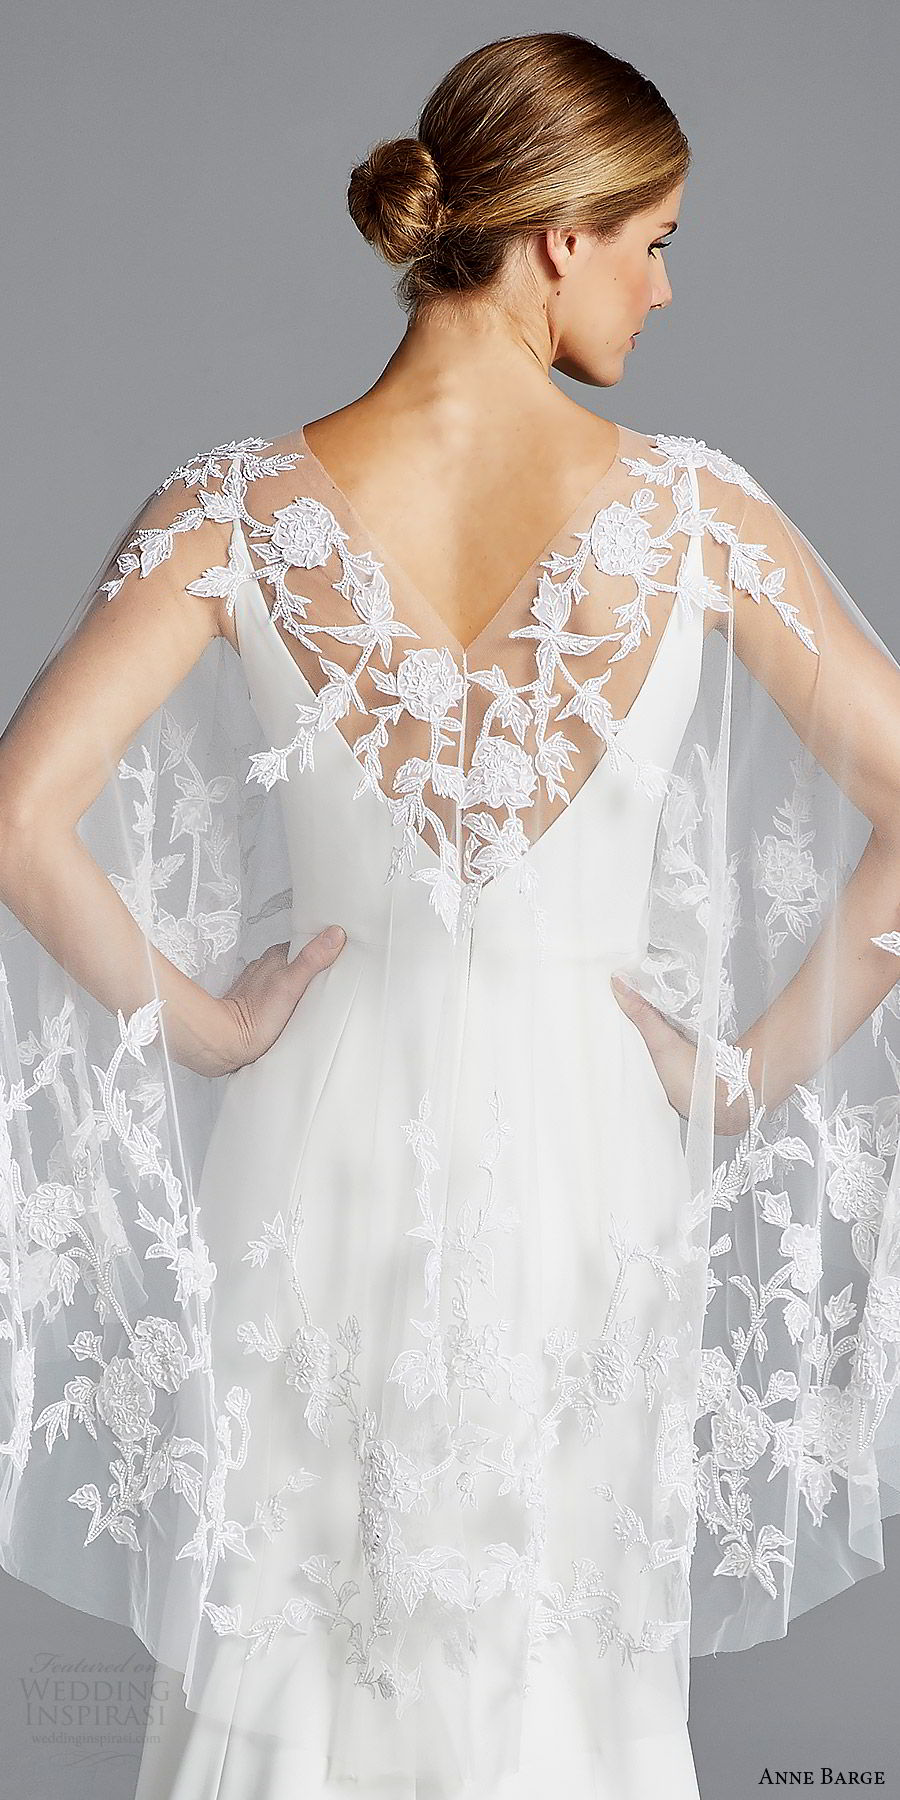 anne barge bridal spring 2019 sleeveless straps v neck sheer capelete sheath wedding dress (elle) zbv sweep train boho chic romantic